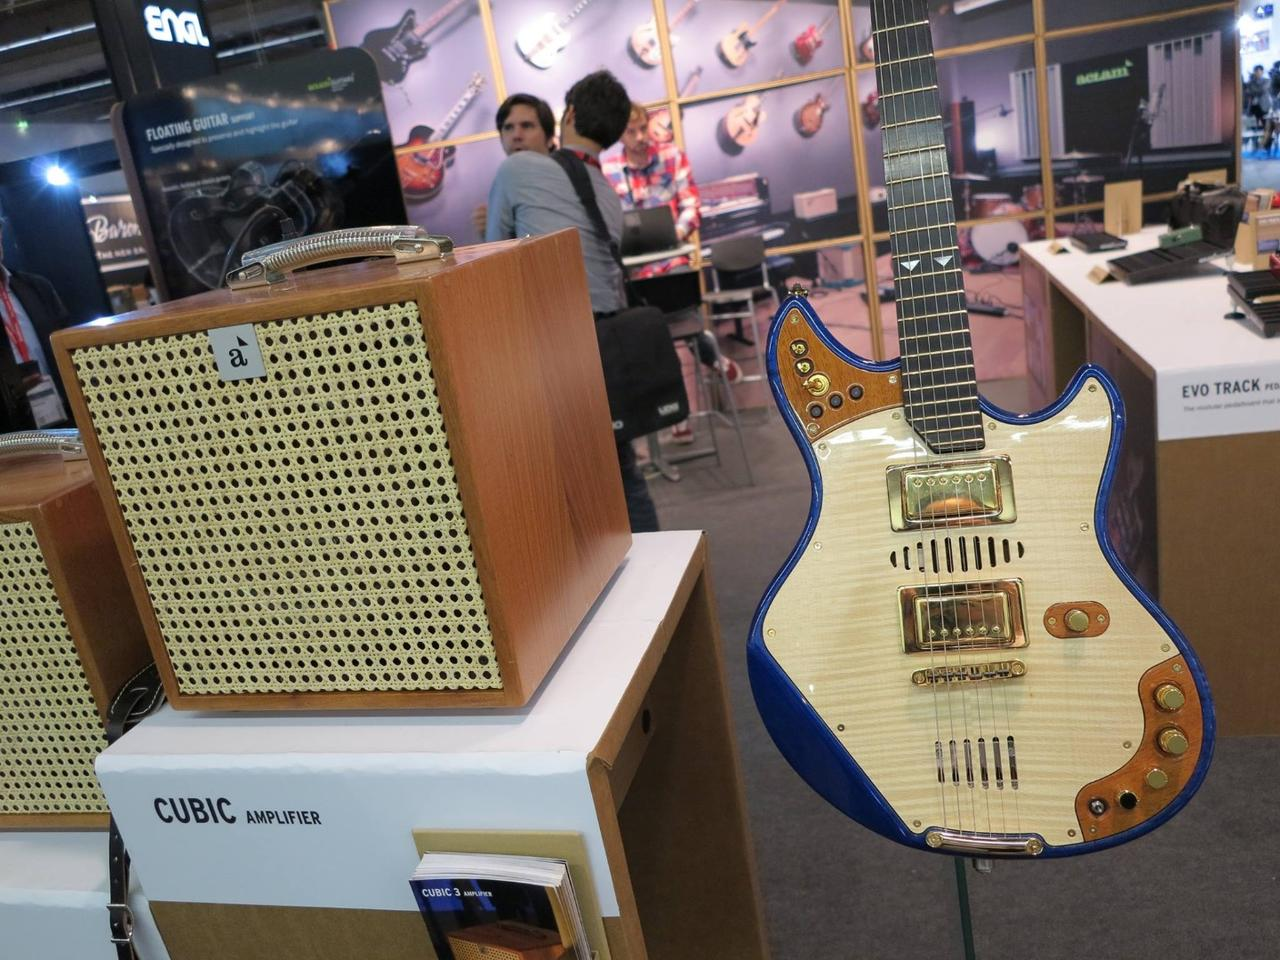 The 20:14 guitar was developed to occupy the hybrid space between electric and acoustic guitars